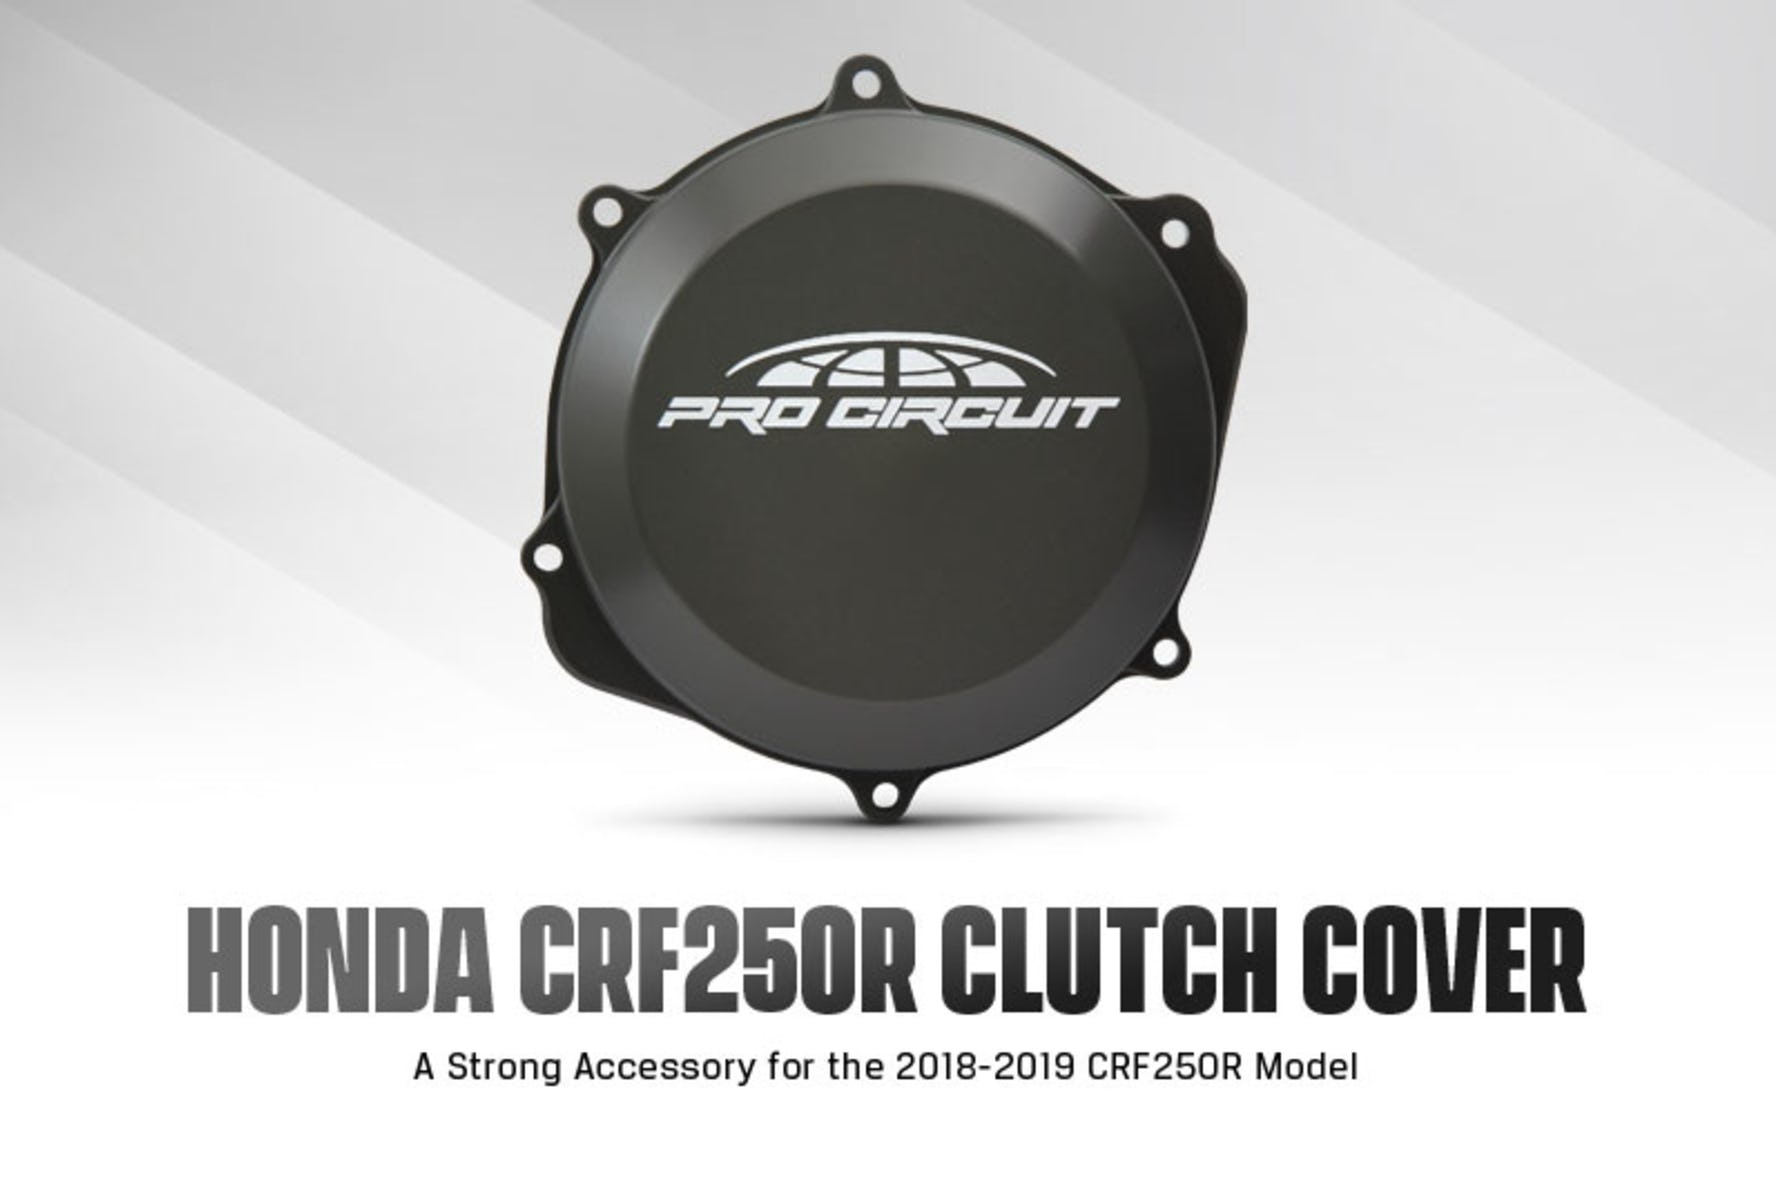 Pro Circuit Releases 2018-2019 CRF250R Clutch Cover - Racer